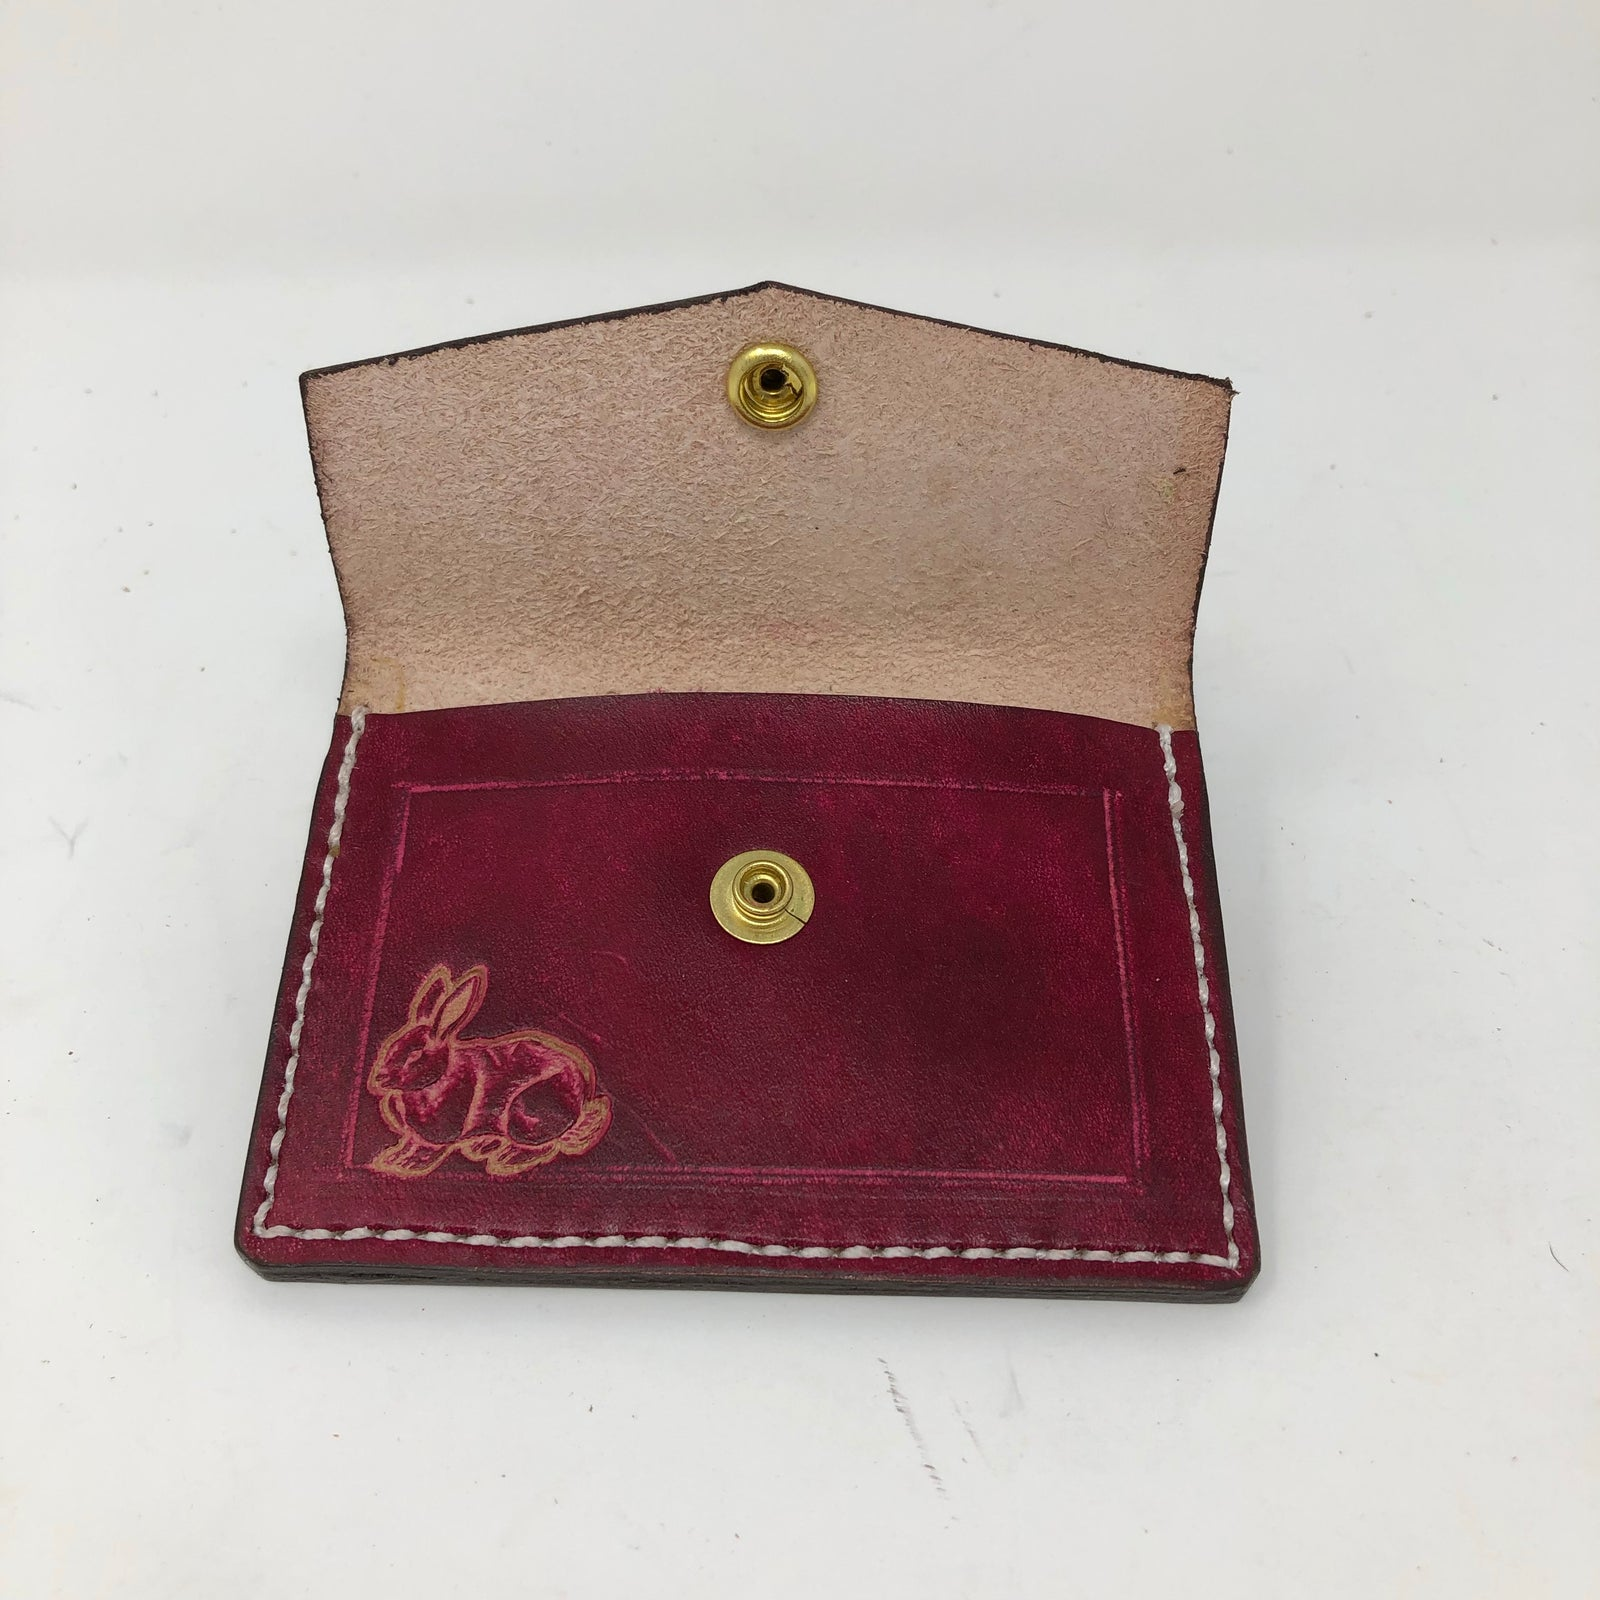 Coin purse/biz card holder